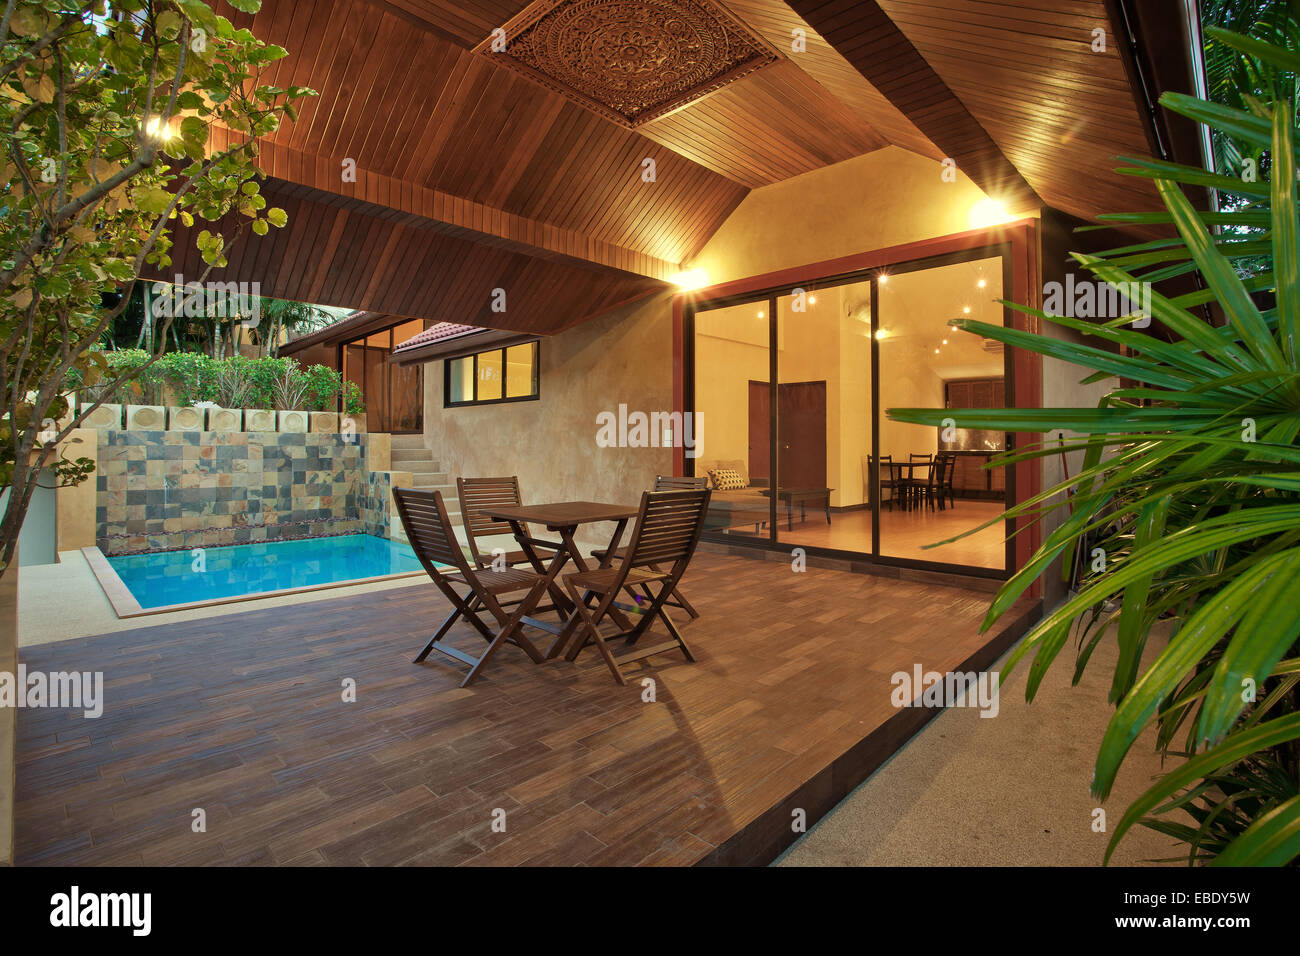 Stock Photo   Panoramic View Of Nice Summer House Patio With Swimming Pool